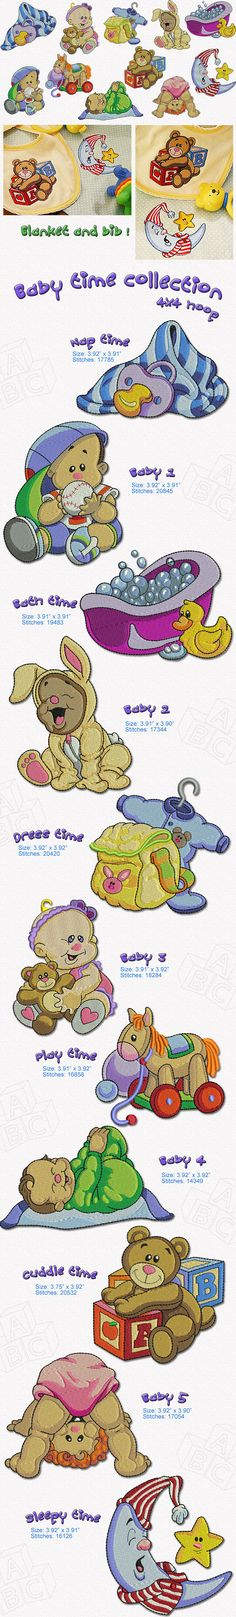 These 11 Baby Time Embroidery designs will be a great addition to your embroideries, great to do baby blankets, Baby bibs, diaper bags towels and much more.... Enjoy...